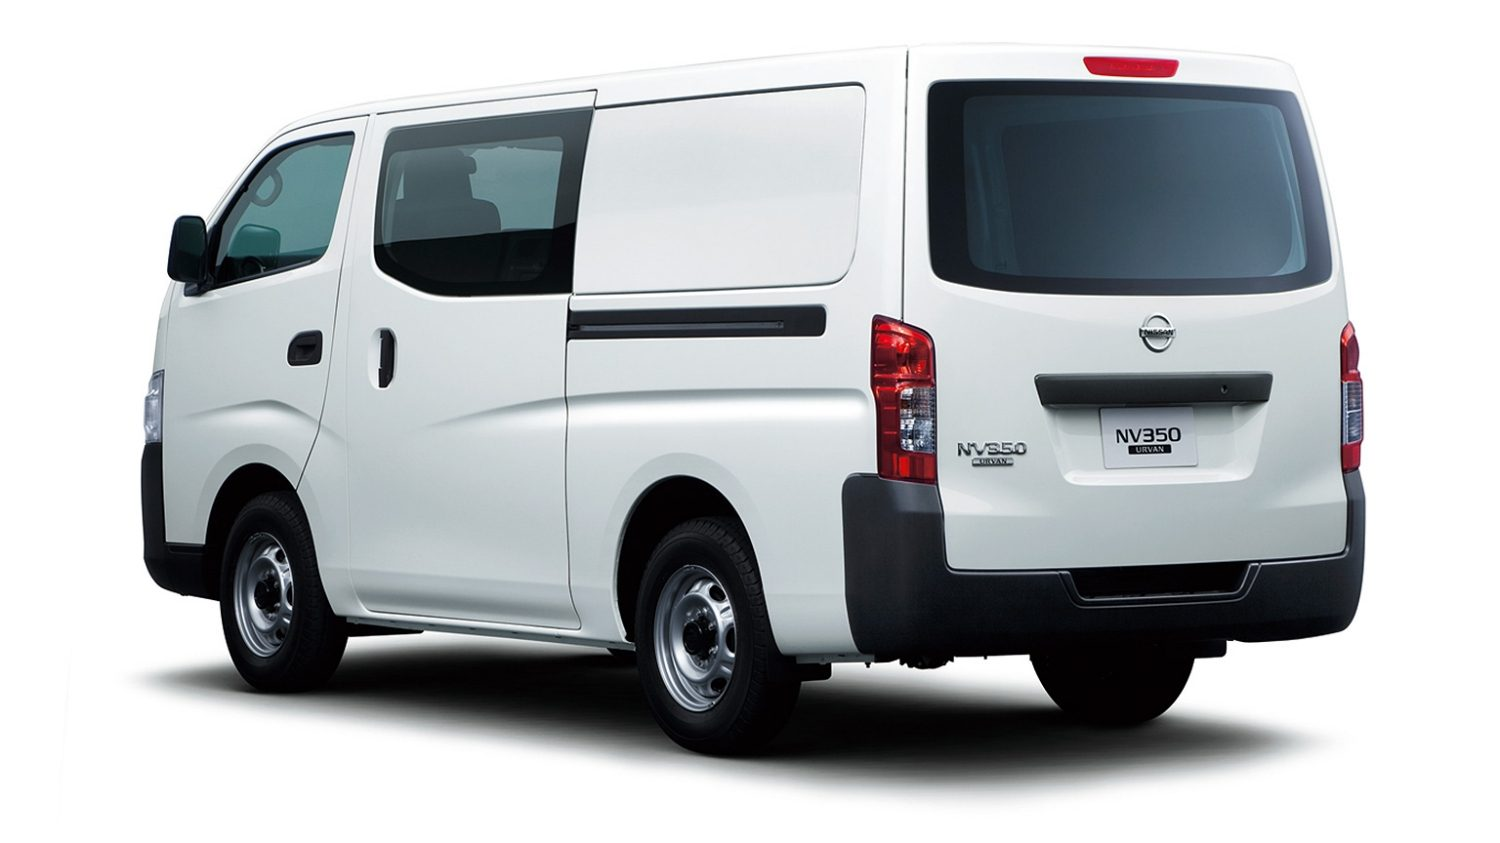 NV350 Half Panel Van bumps up the number of crew seats up to six with a  fold up second row. With 5 doors, passengers get access in an out from  either side ...